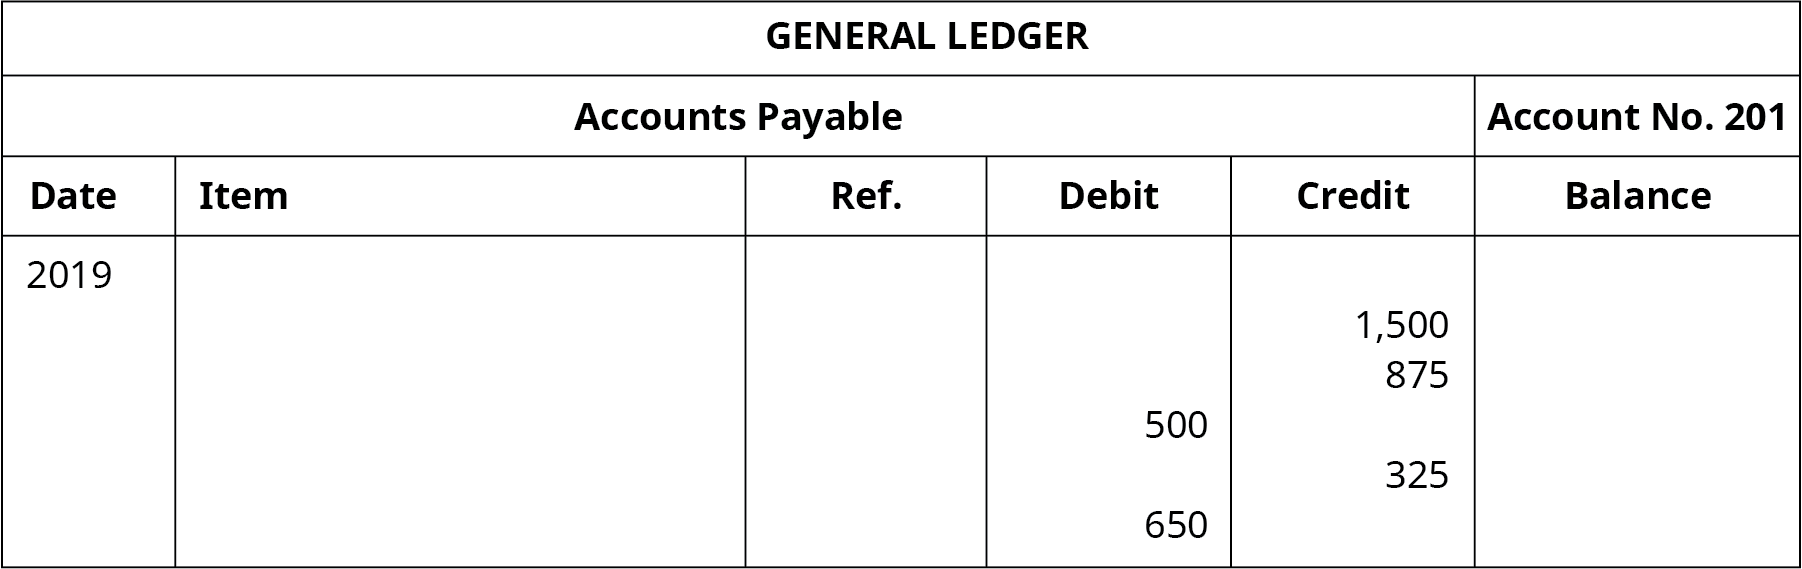 "A General Ledger titled ""Accounts Payable No. 201"" with six columns. Date: 2019. Debit column entries: 500, 650. Credit column entries: 1,500, 875, 325."